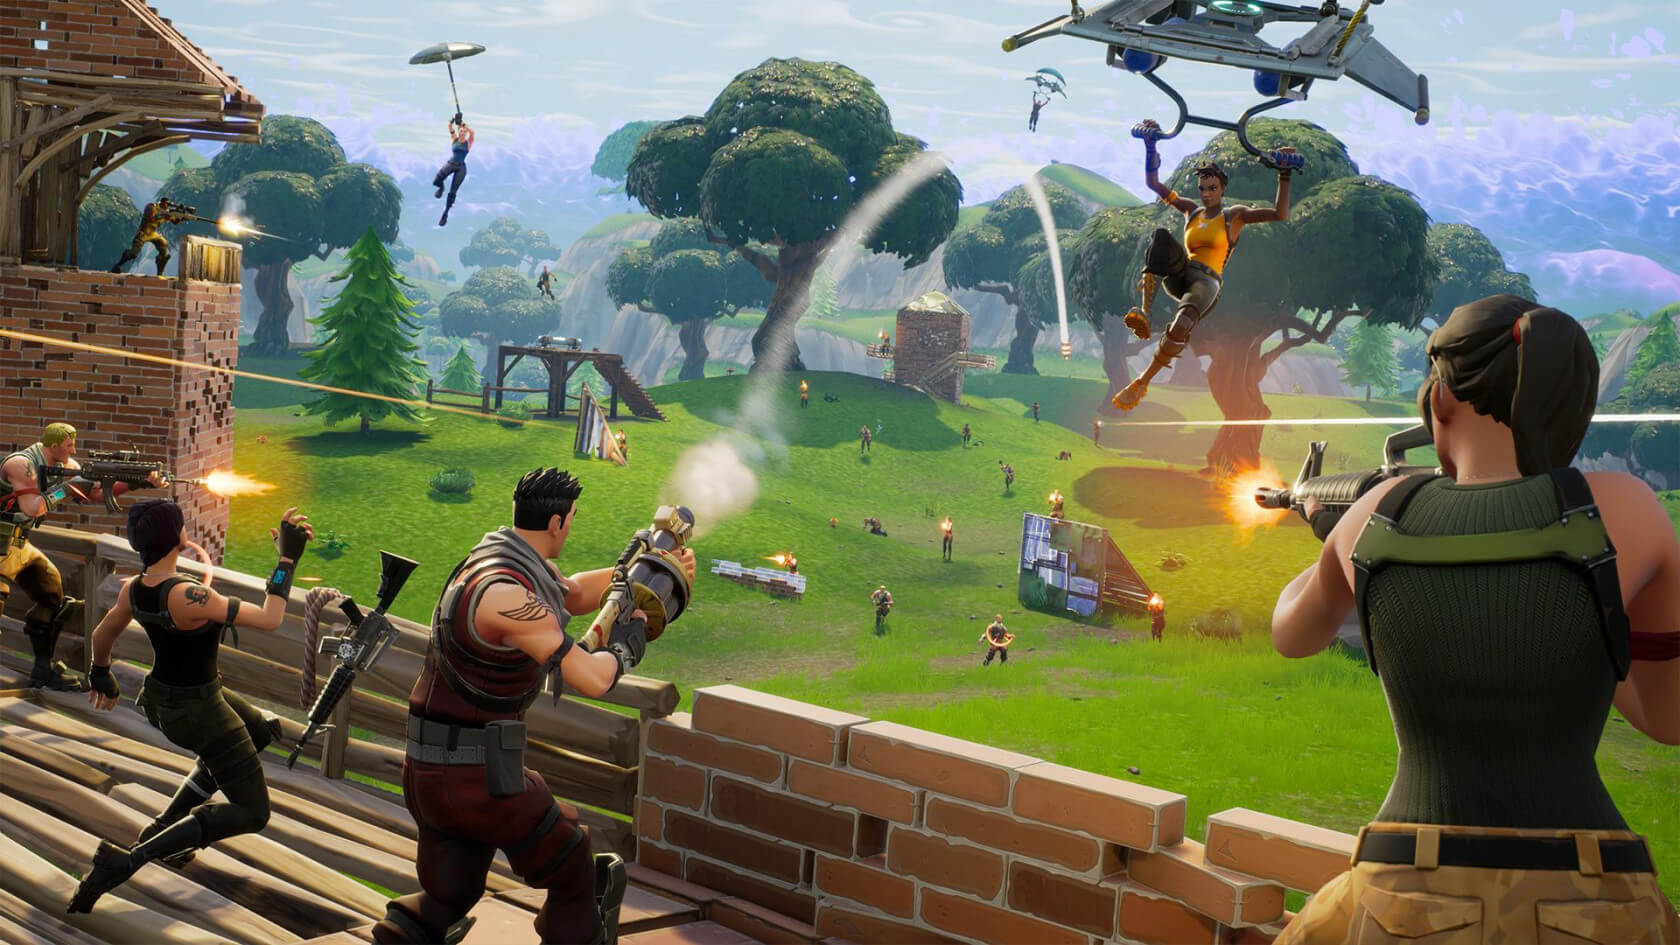 Battle royale games: what are the best games like Fortnite?